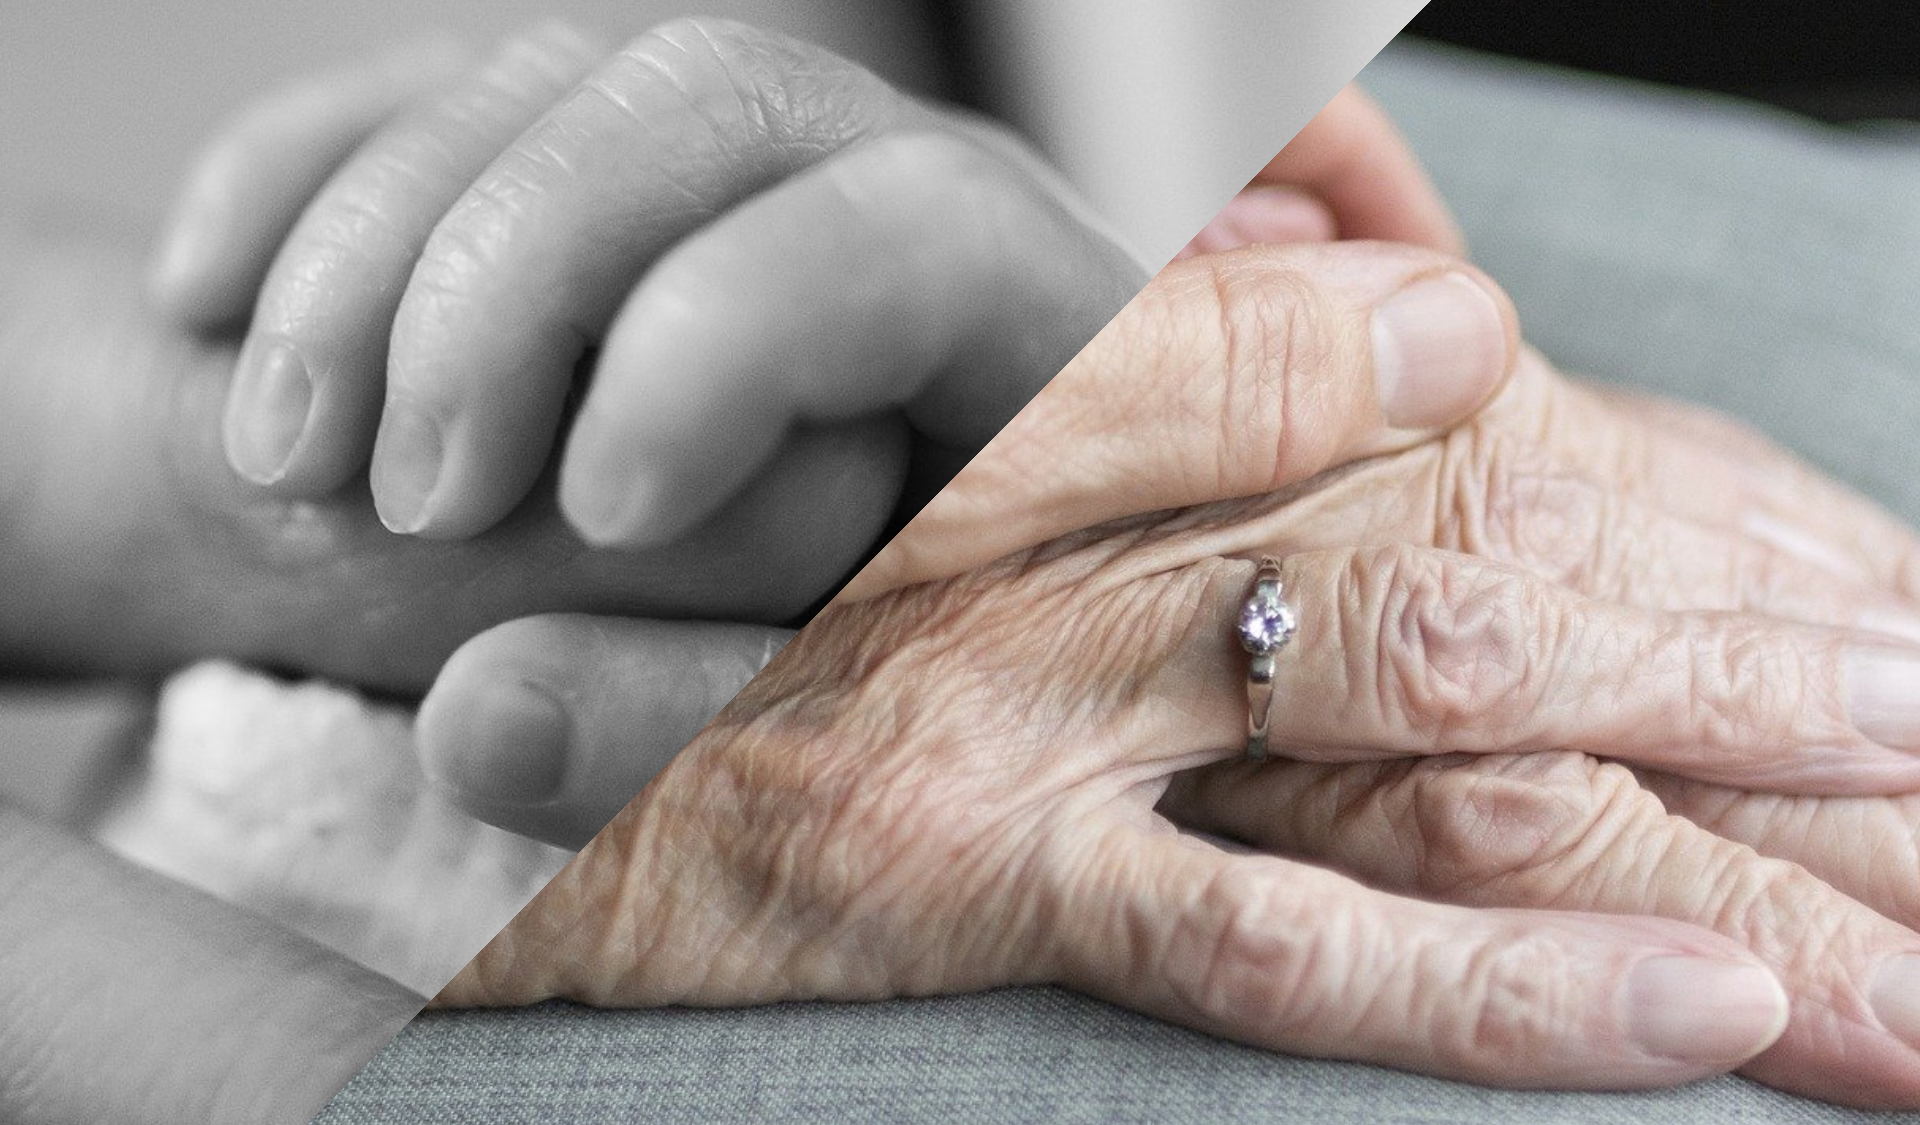 Image split with one side showing a baby clutching a hand and other side showing elderly hand.